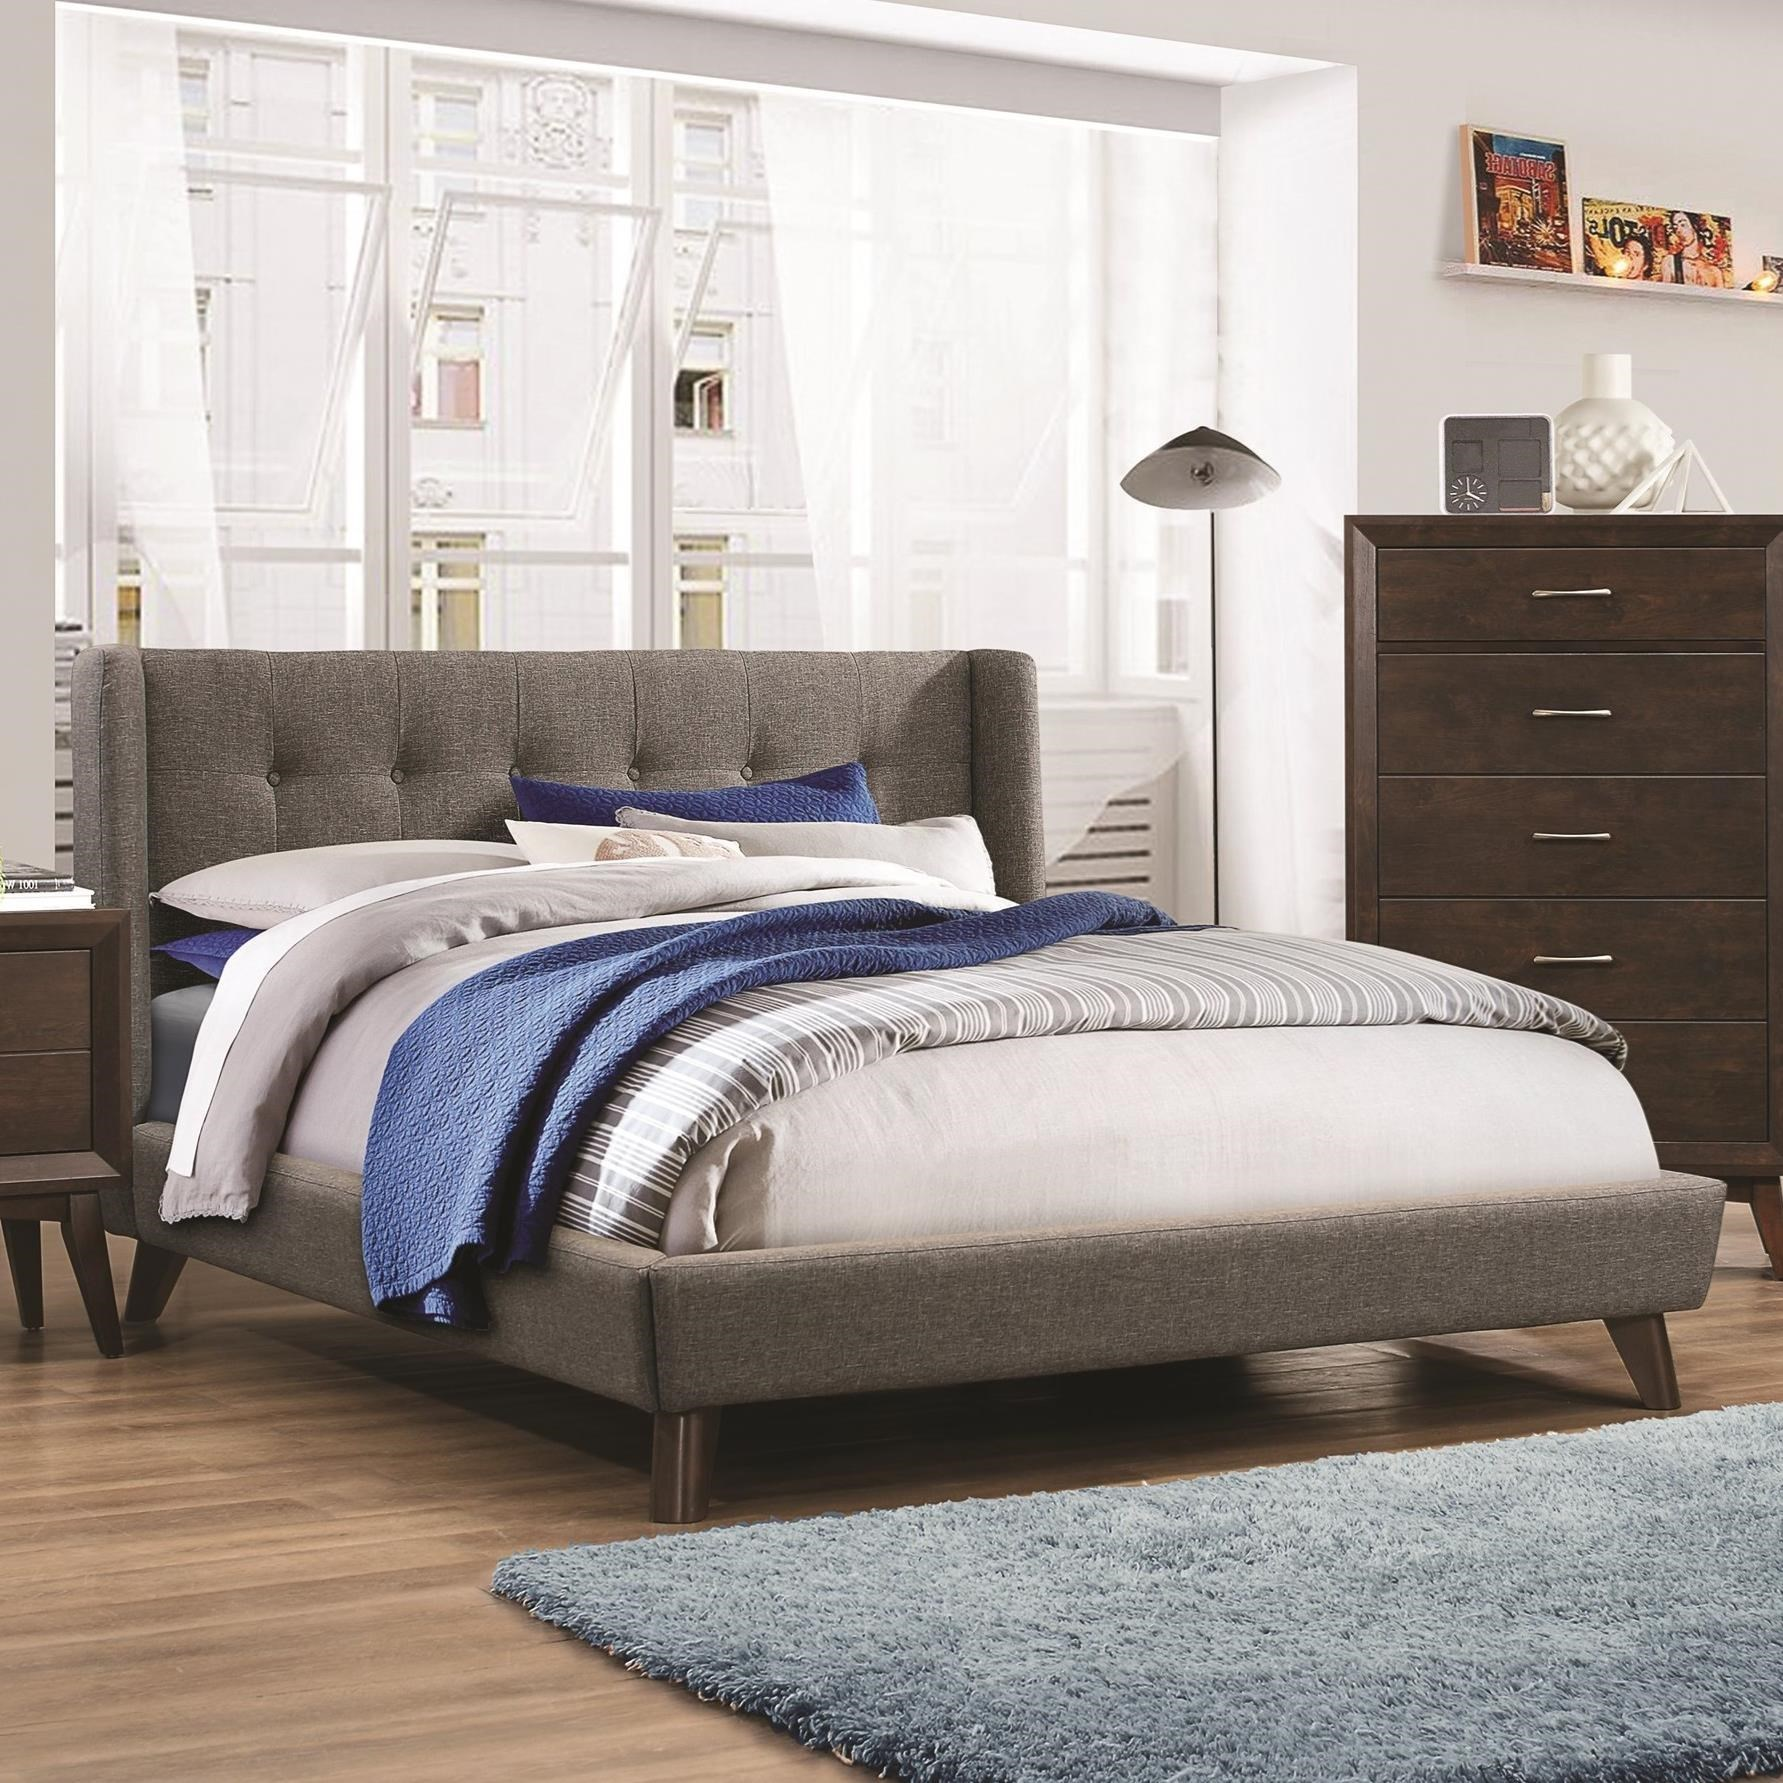 Queen Bed.Carrington Queen Upholstered Wing Bed By Coaster At A1 Furniture Mattress